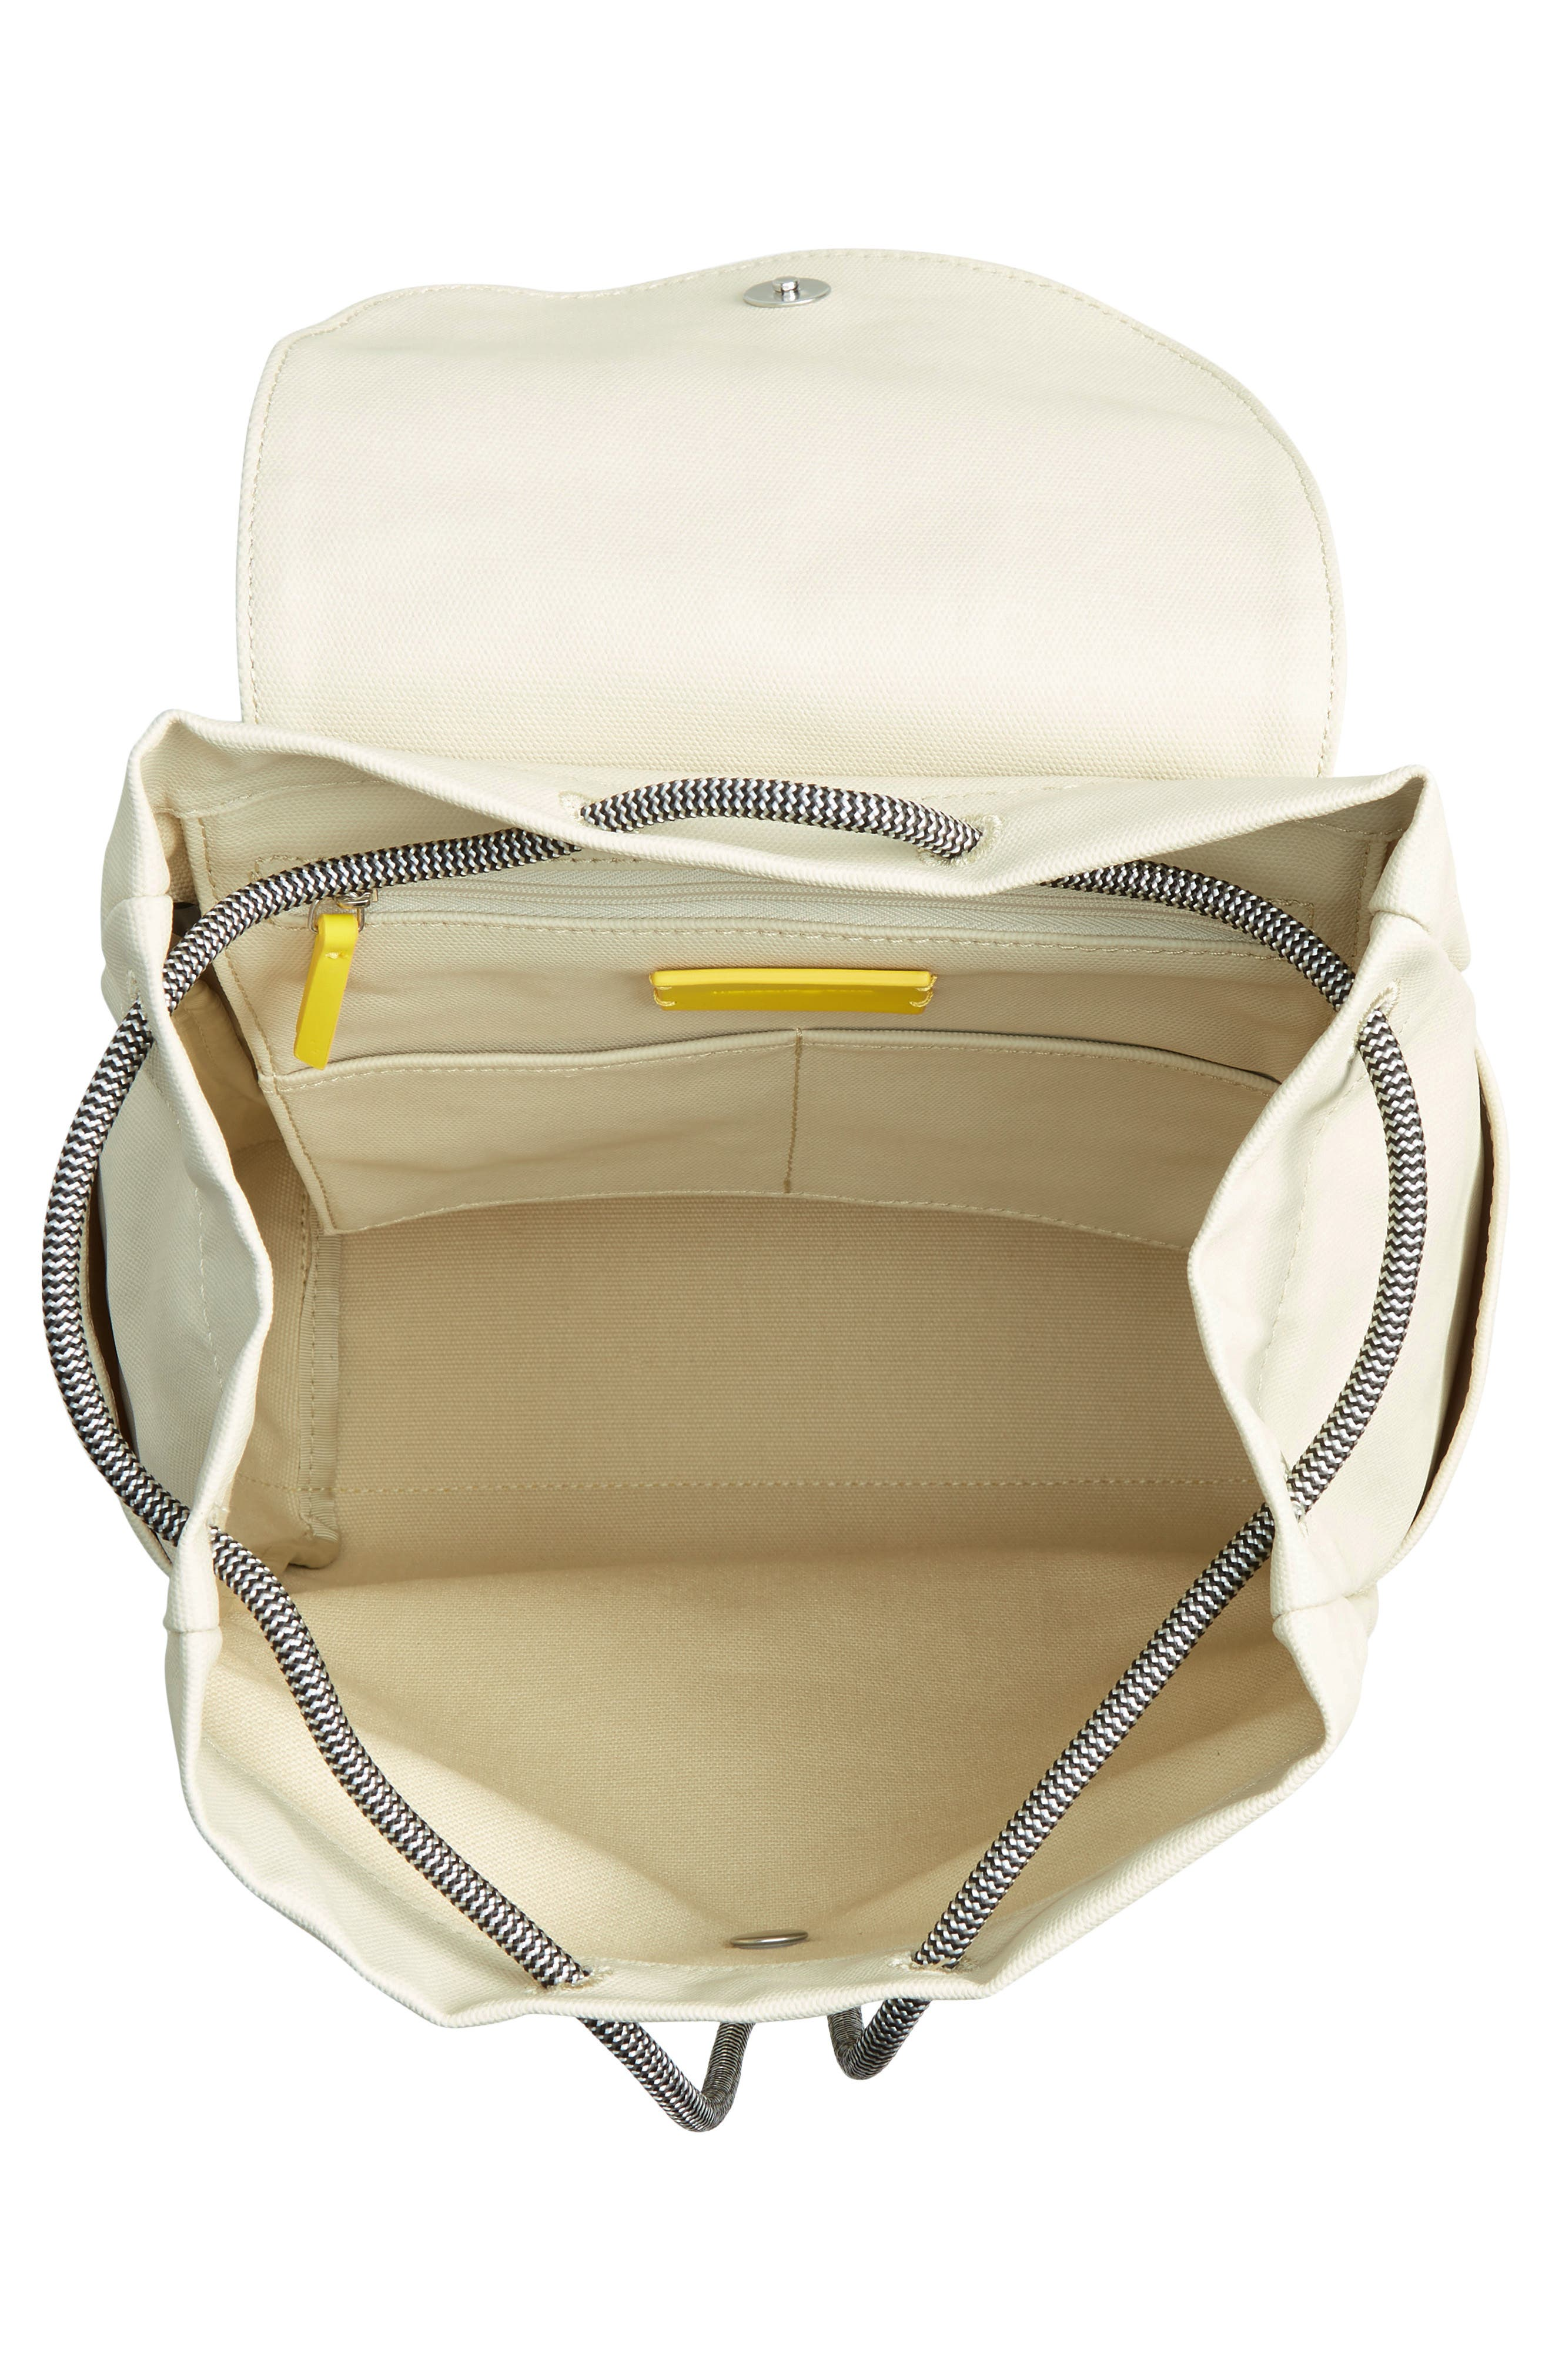 Penny Flap Backpack,                             Alternate thumbnail 4, color,                             IVORY BIRCH/YELLOW